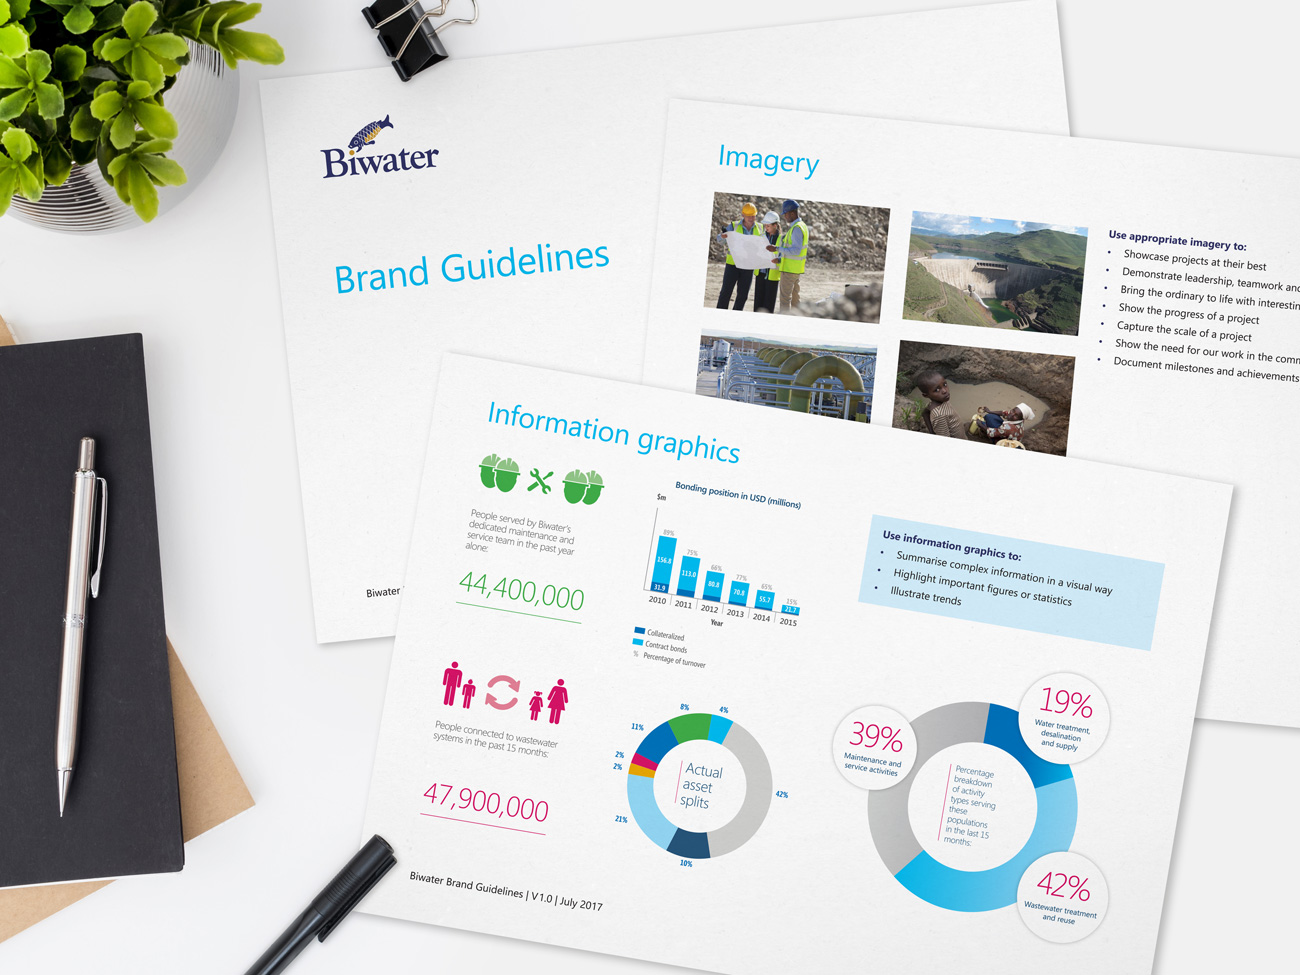 Biwater Brand Guidelines